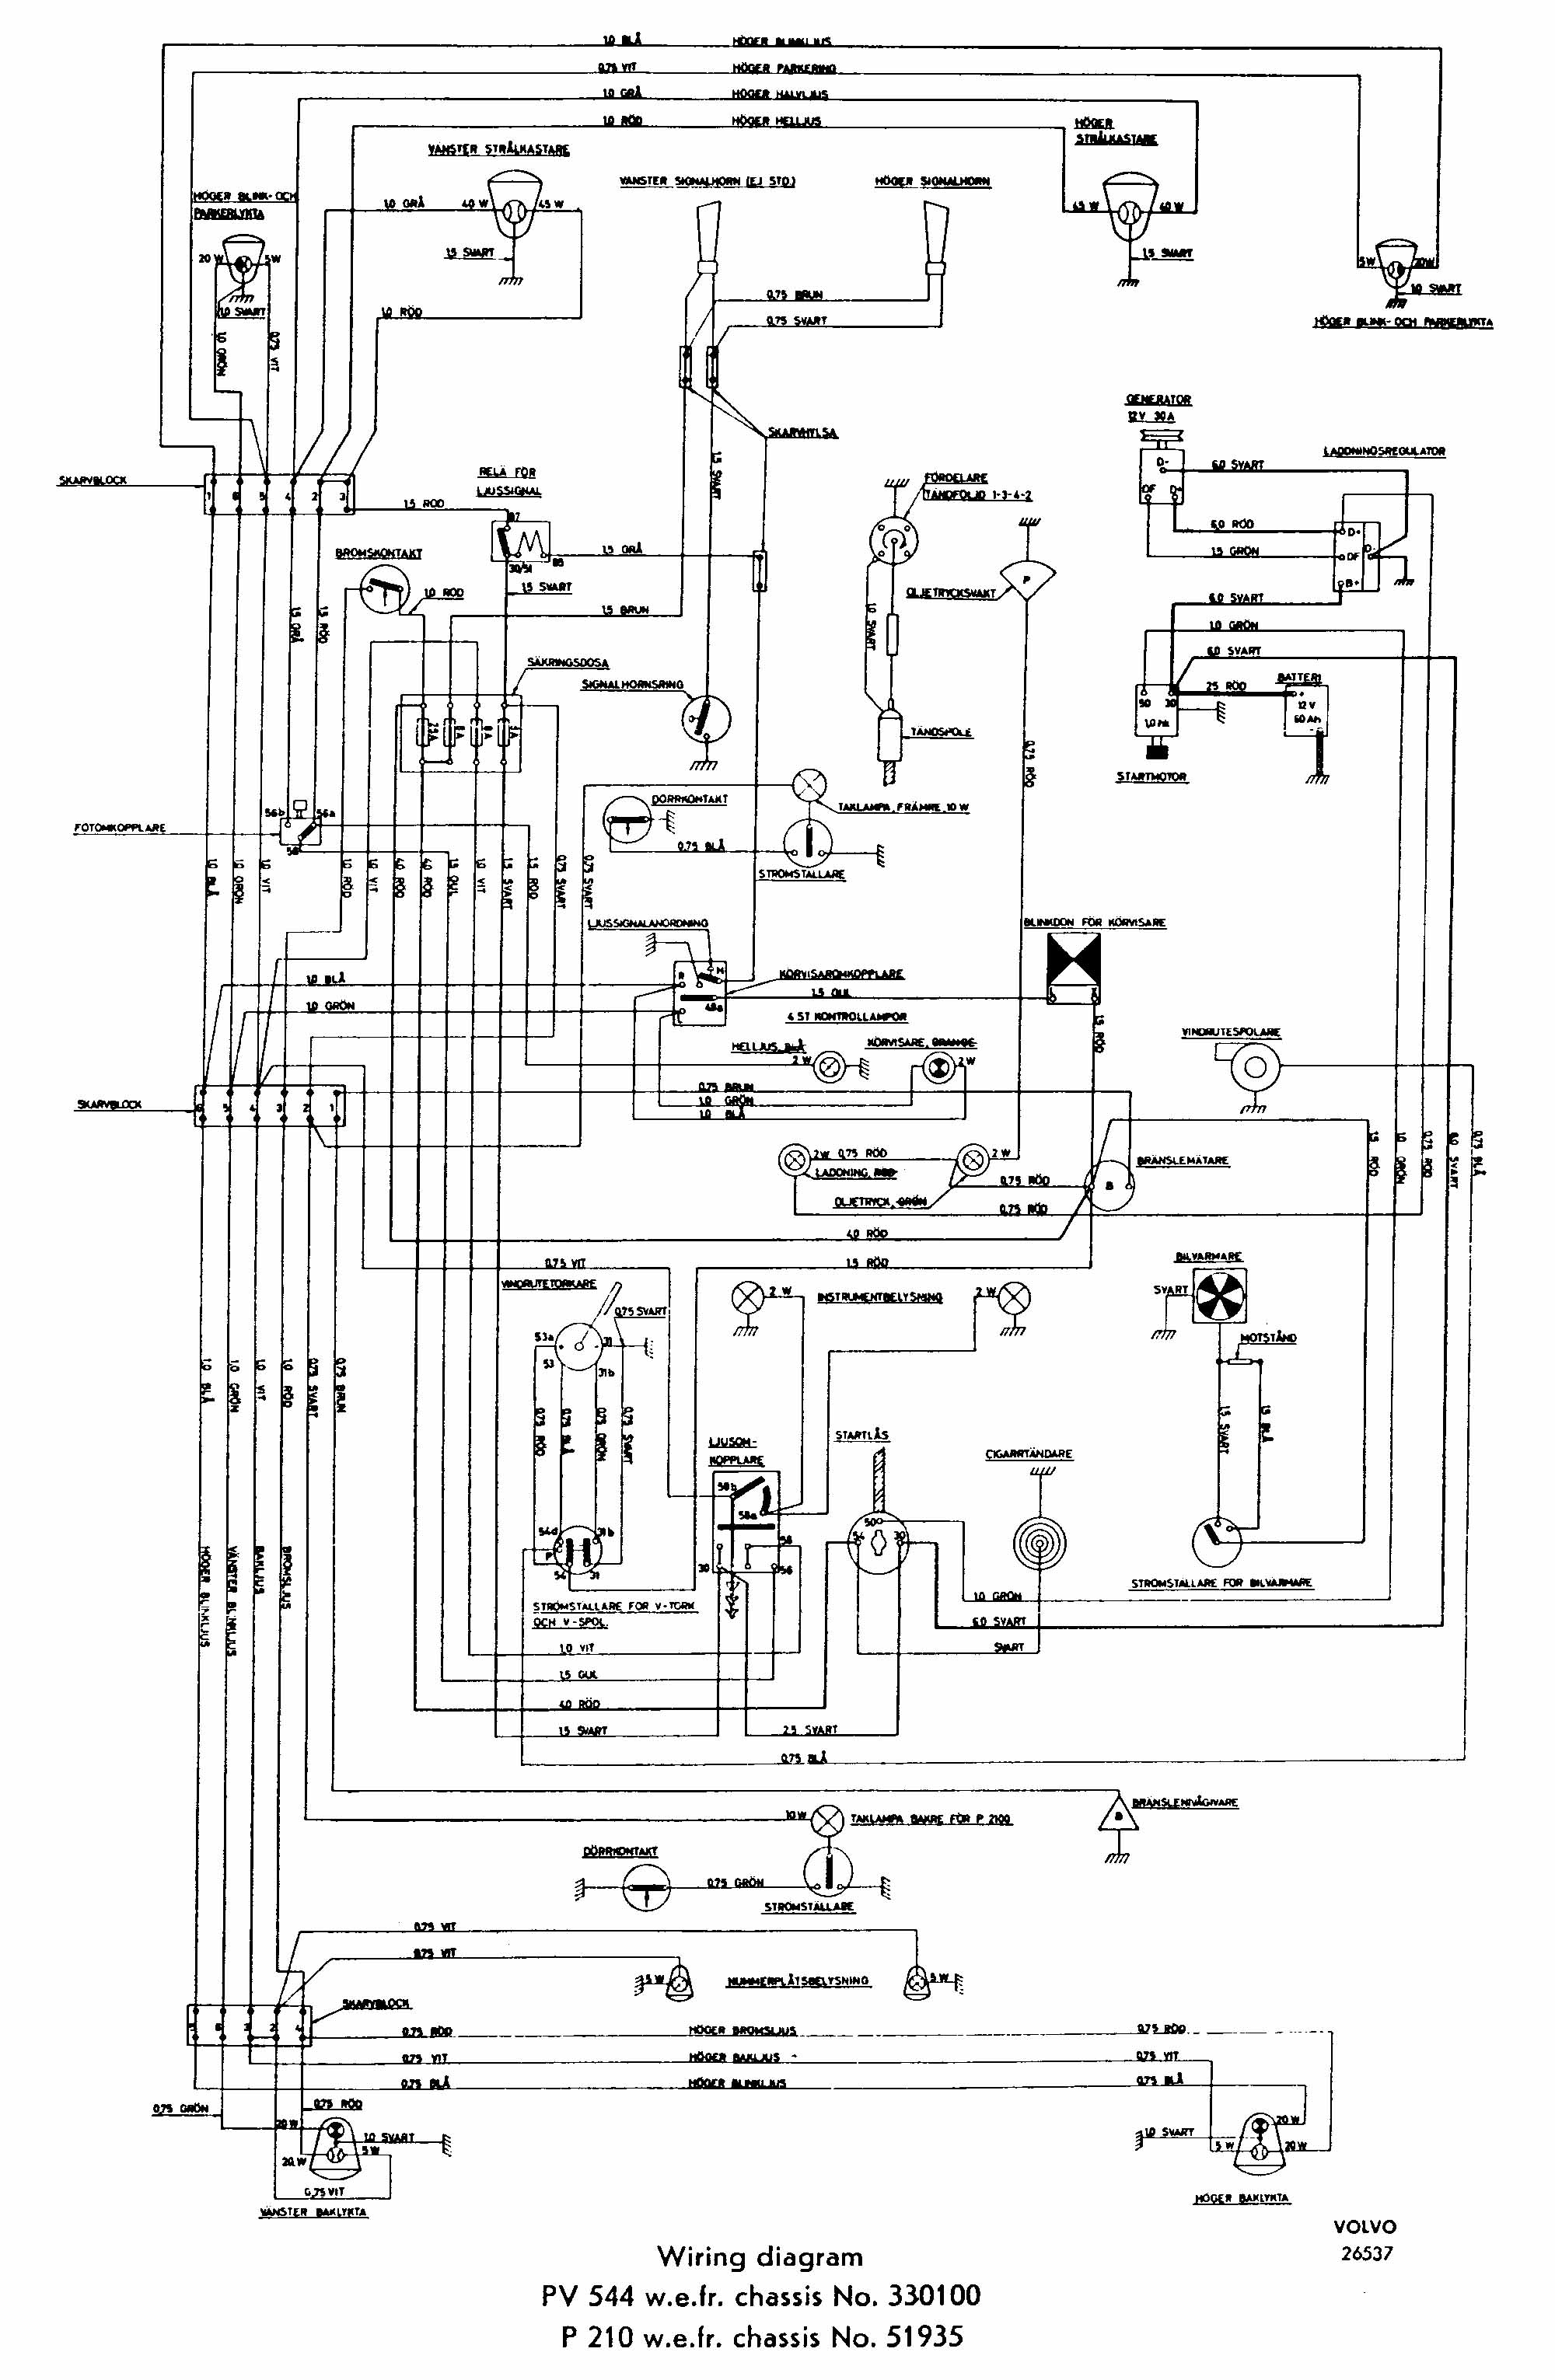 Sw Em Fuses Allocation And Troubleshooting 1954 Chevy 210 Wiring Diagram Link To